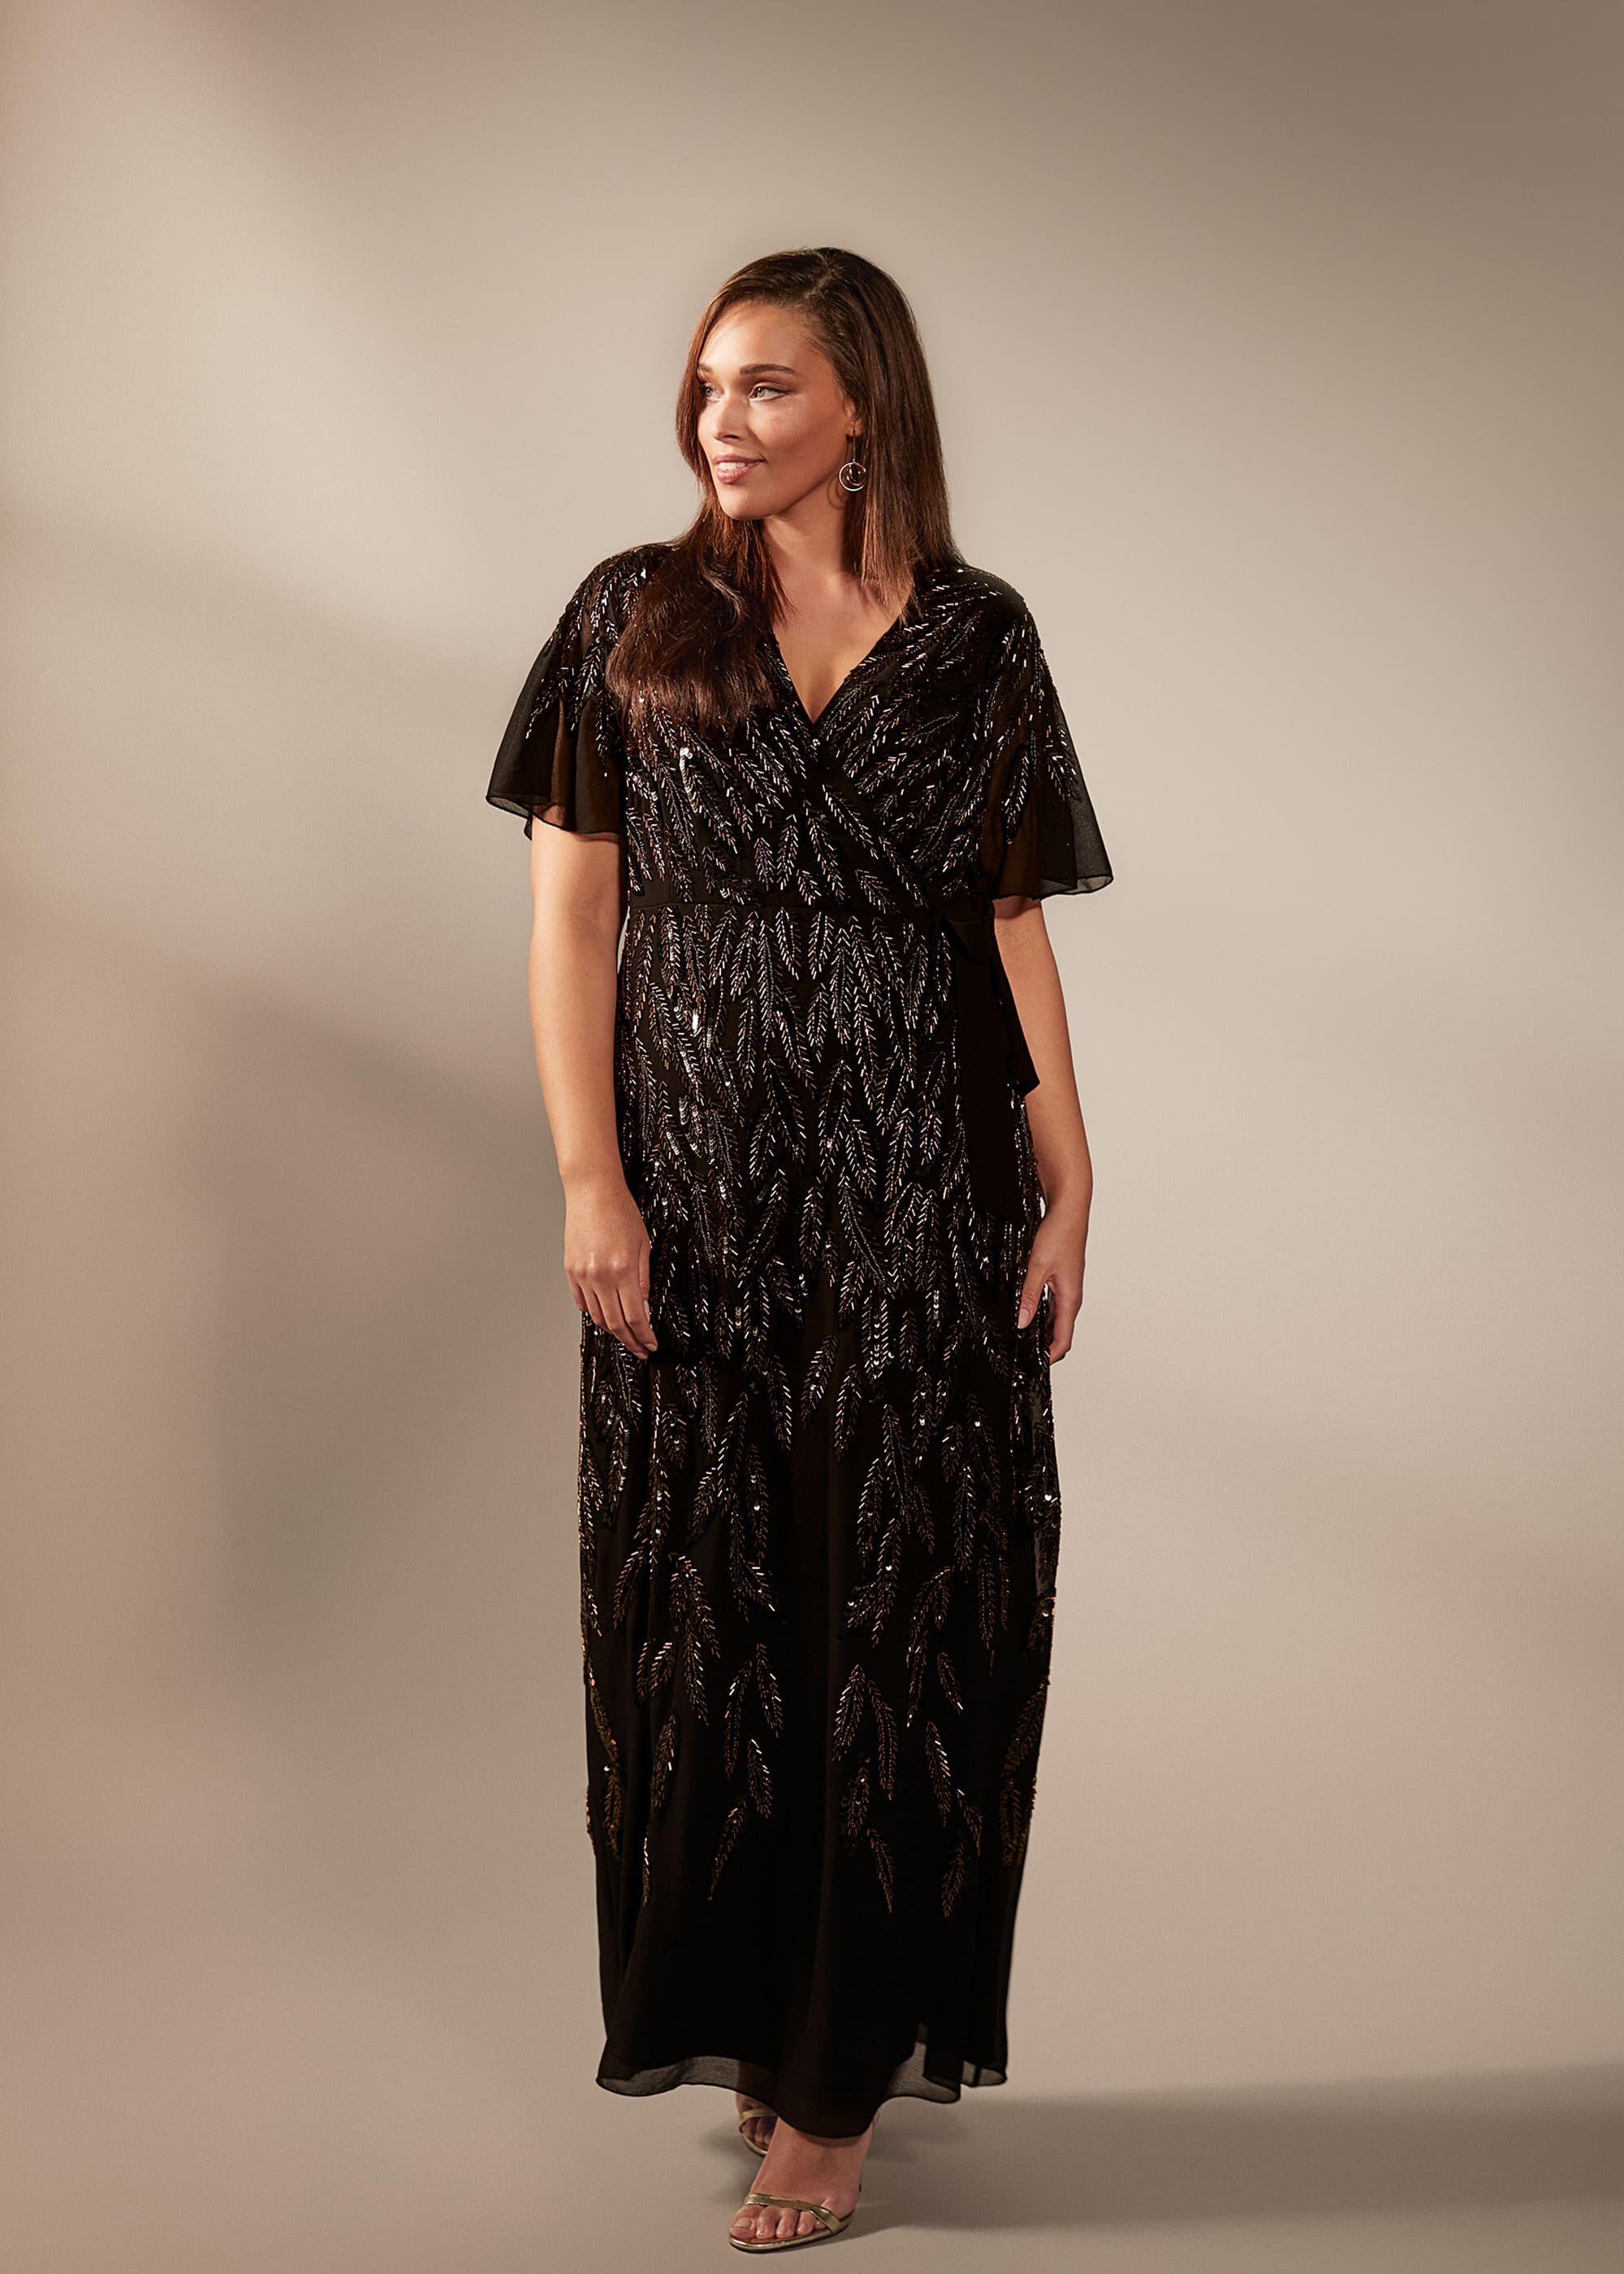 Studio 8 Hermosa Beaded Maxi Dress, Black, Maxi, Occasion Dress